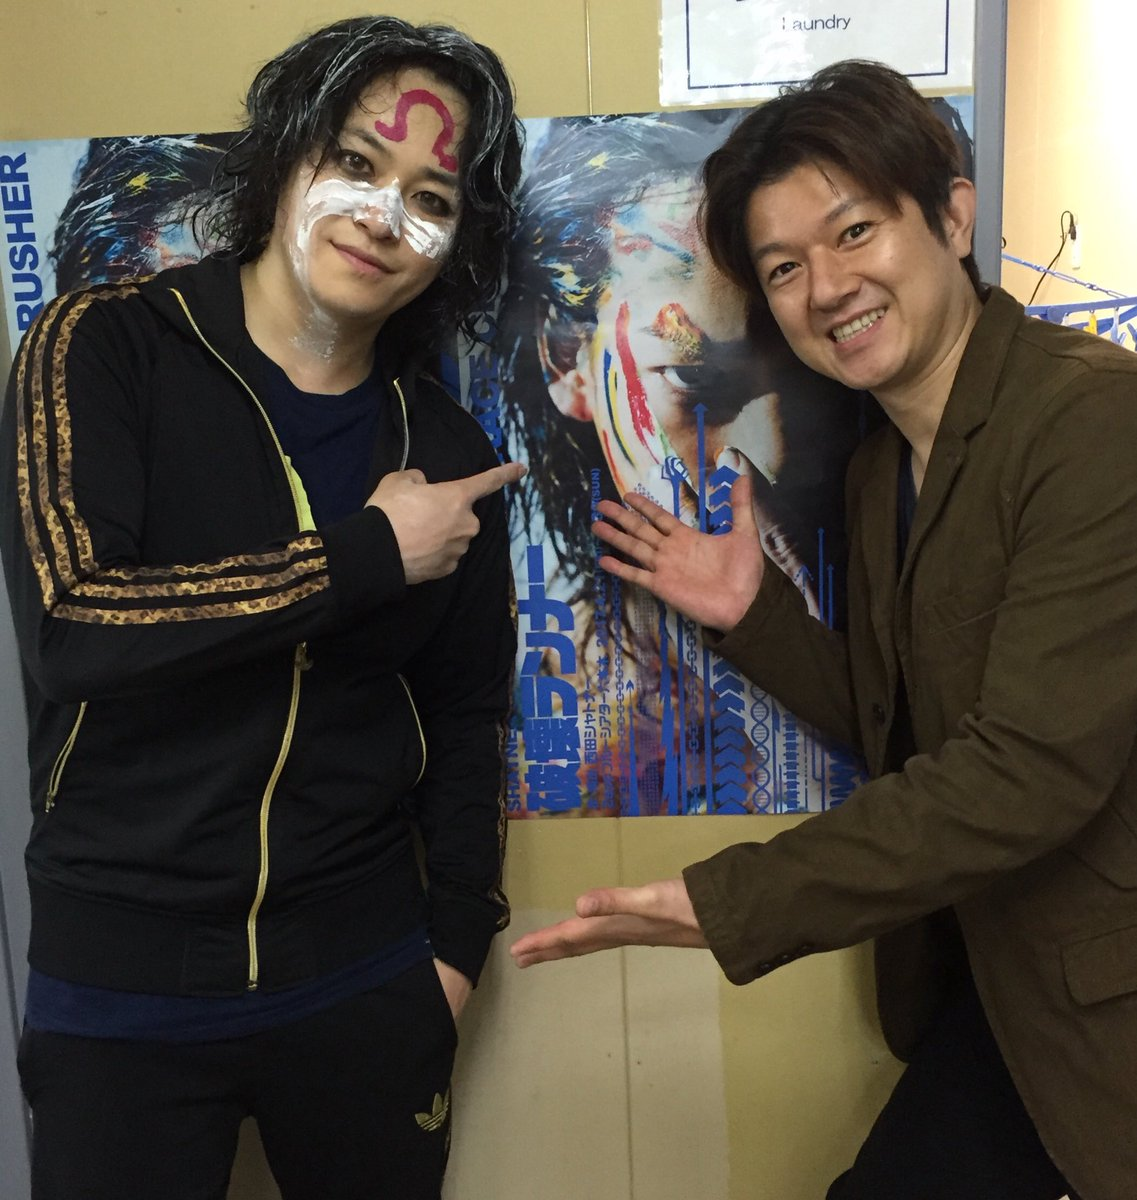 「ALL OUT!! THE STAGE」の脚本・演出をお願いしてる西田シャトナーさんが、こちらも脚本・演出を手掛ける『